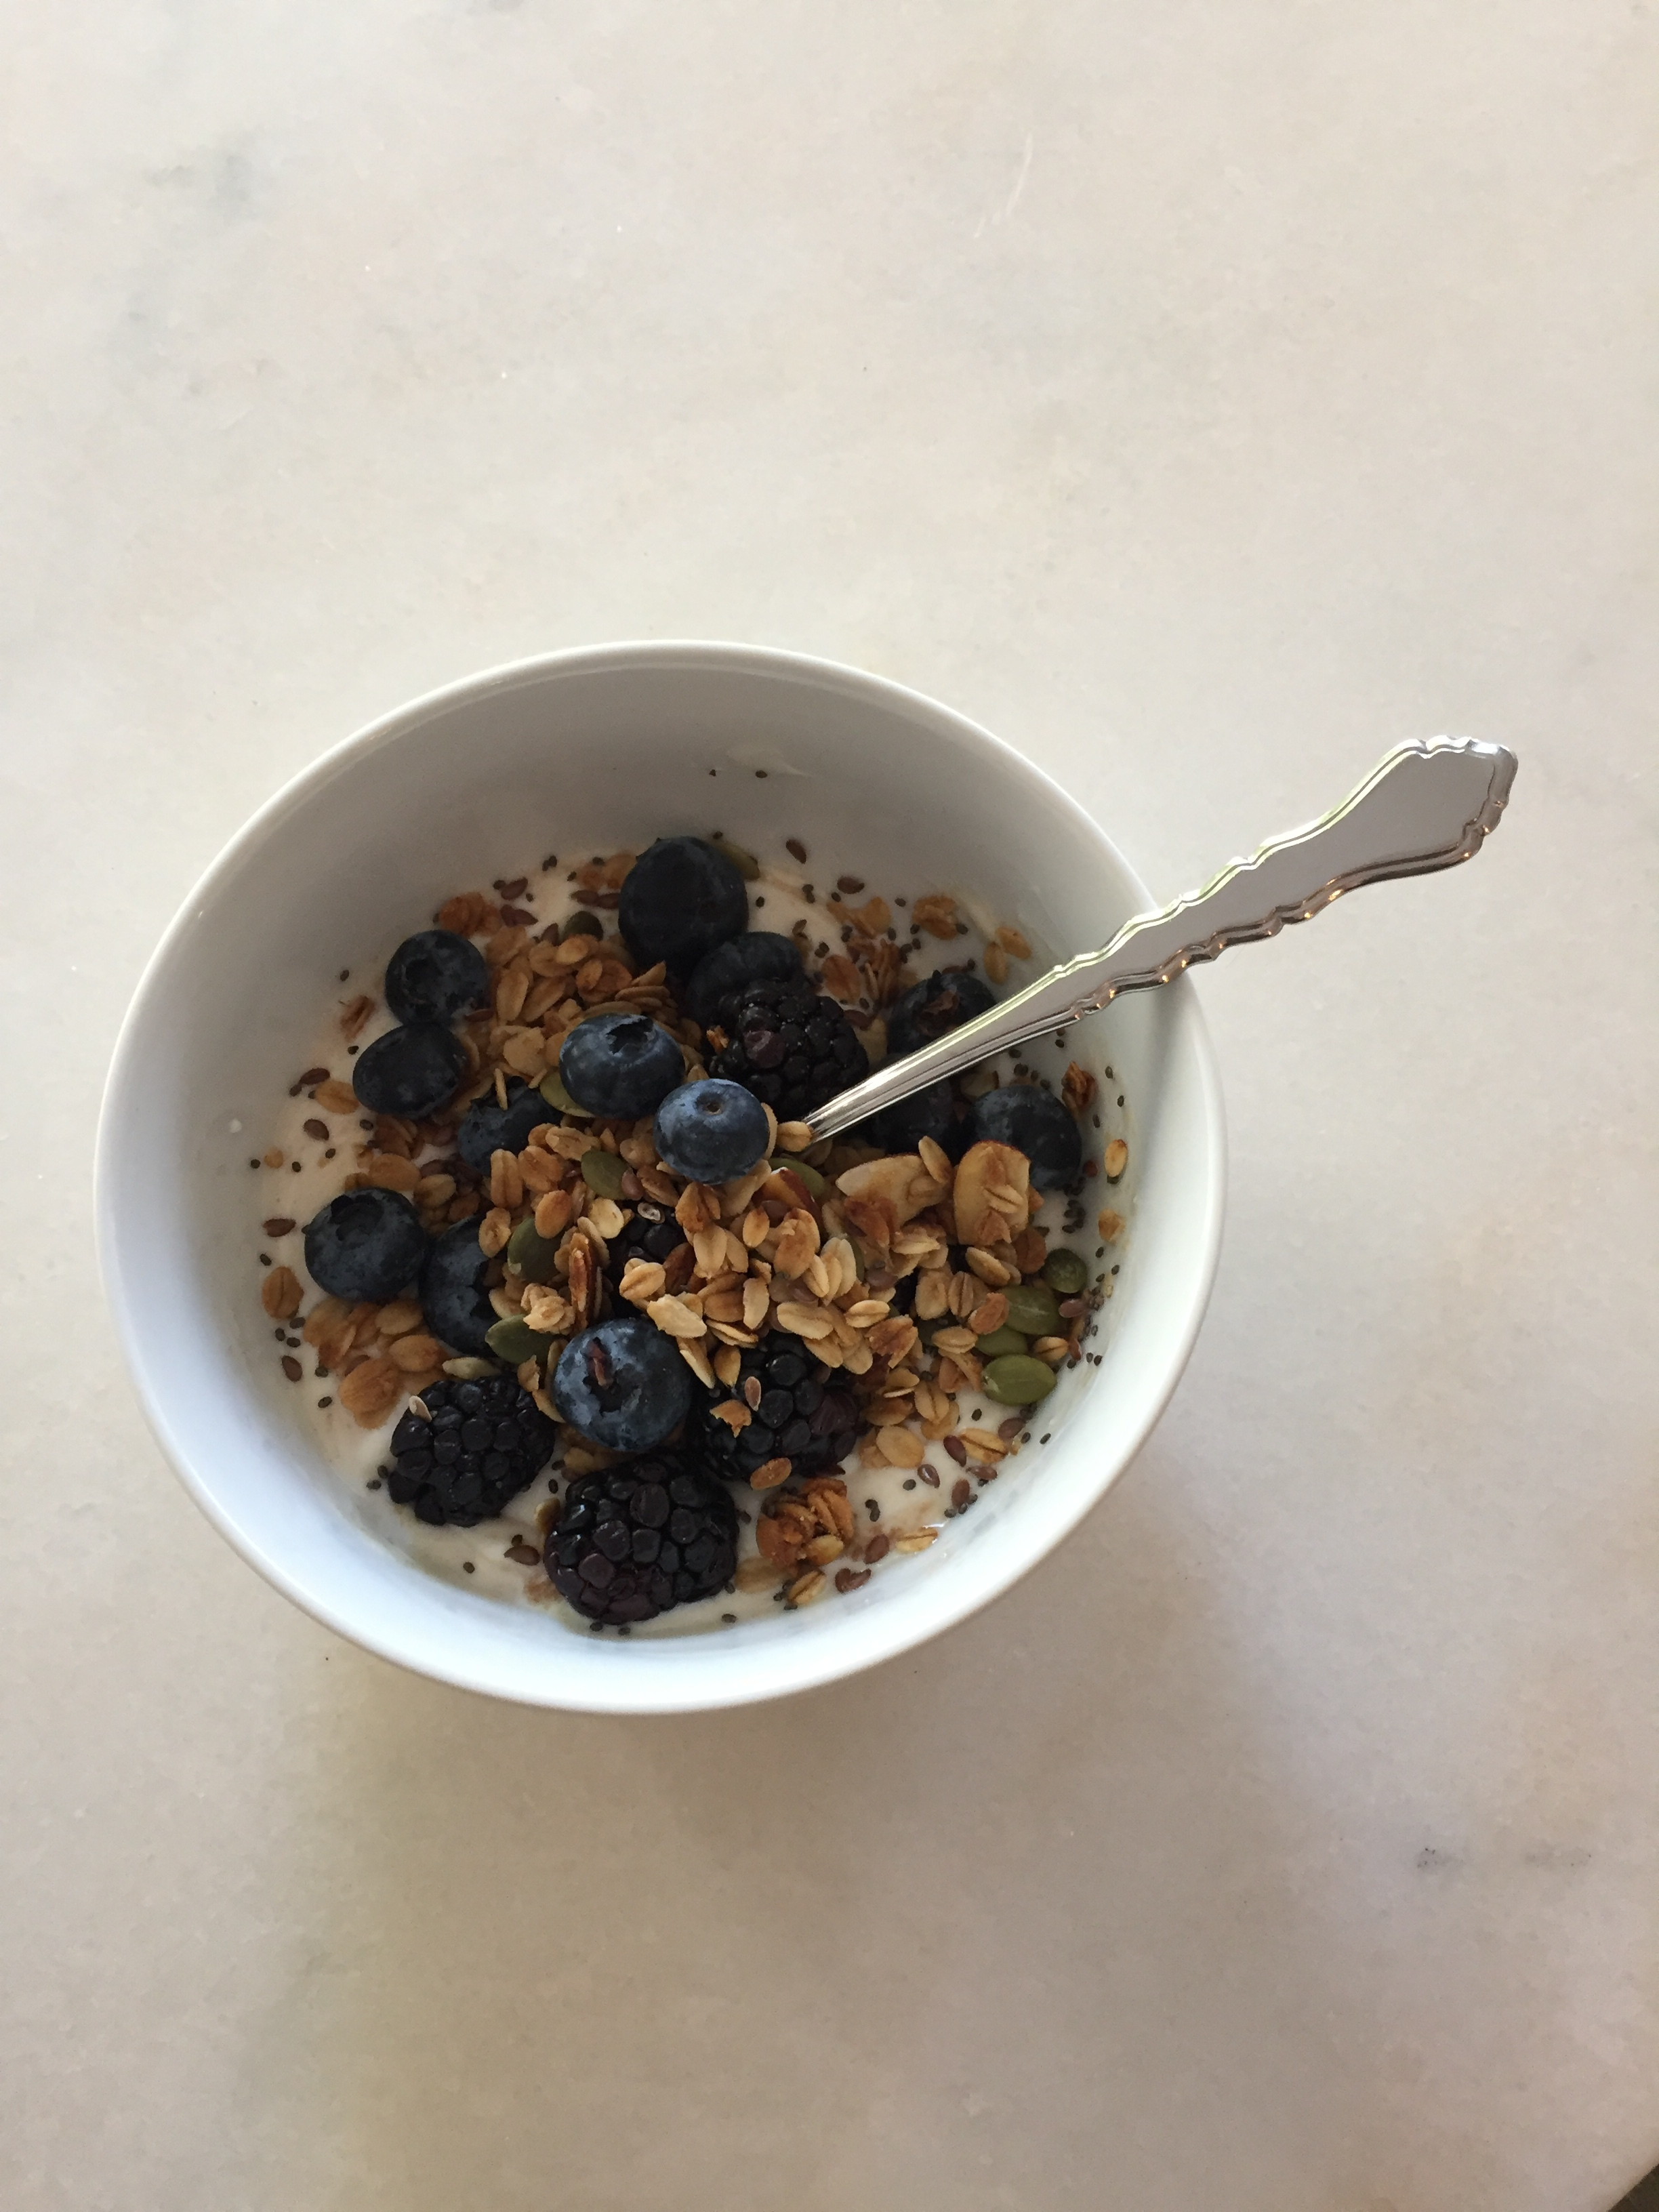 The Nutrition Secret Every Parent Should Implement in Their House - Breakfast, Dallas Nutritional Counseling #dallasnutritionalcounseling #balancedeating #quickrecipes #easyrecipe #carbfatpro #breakfast #caseybonanord #dallasrd #dietitian #nutritionist #balancedbreakfast